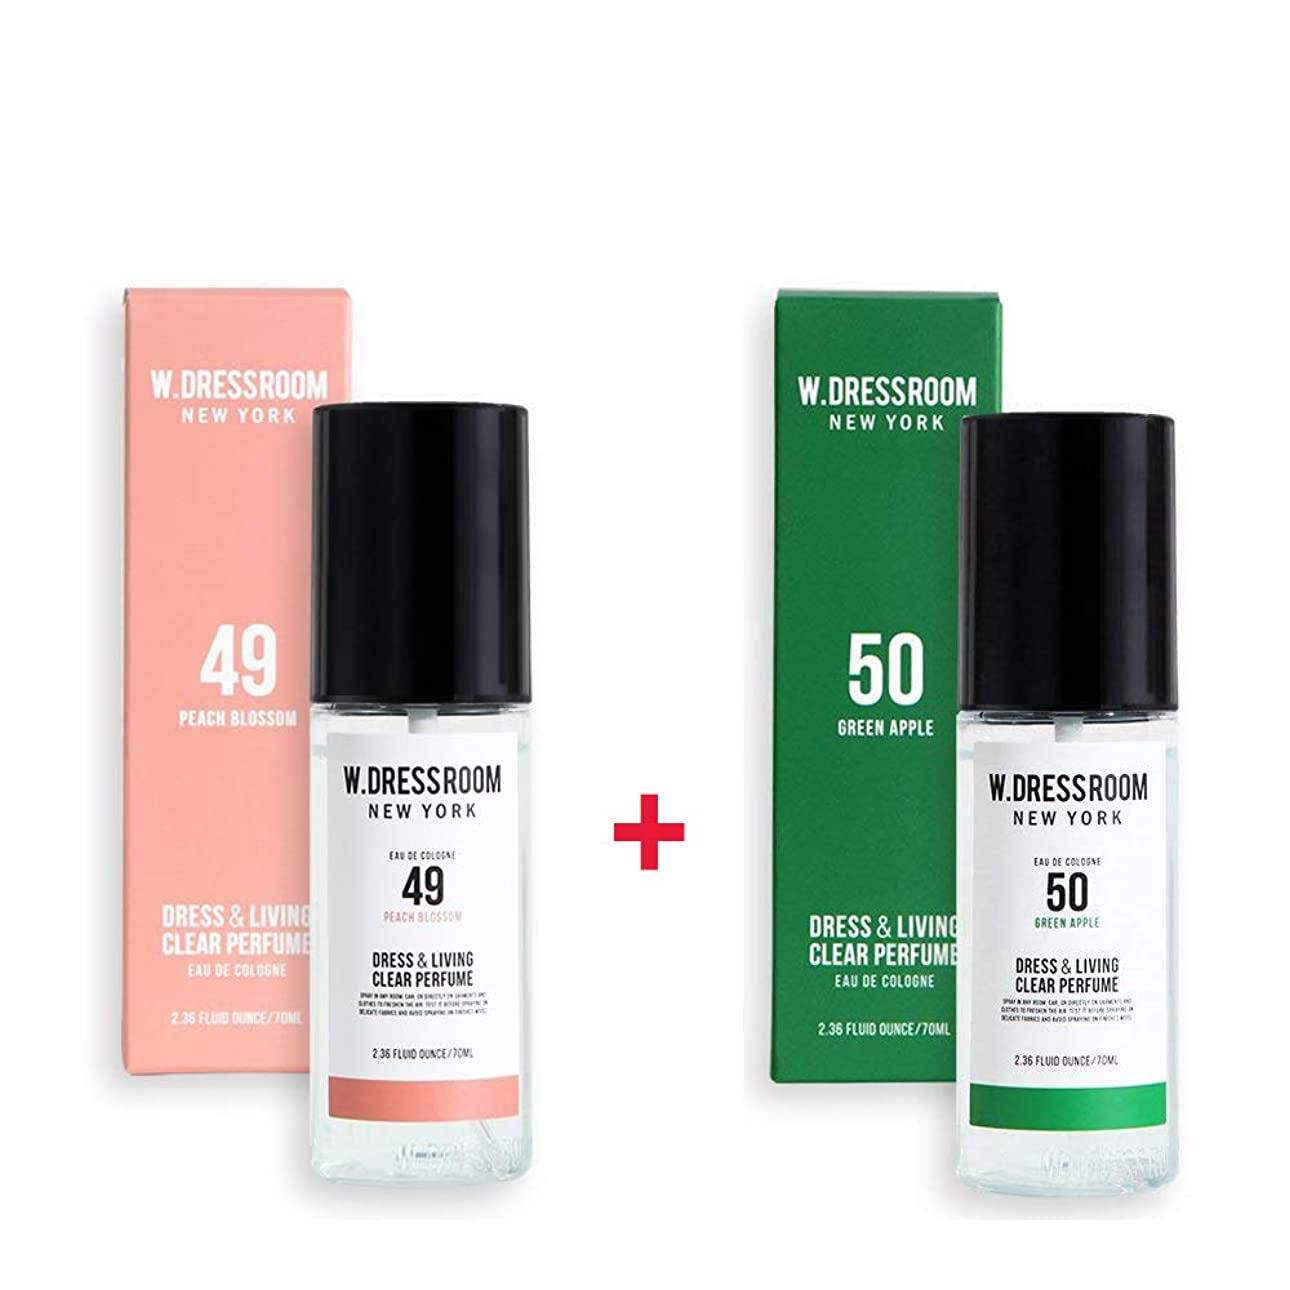 宣言するコンピューターゲームをプレイする値下げW.DRESSROOM Dress & Living Clear Perfume 70ml (No 49 Peach Blossom)+(No 50 Green Apple)